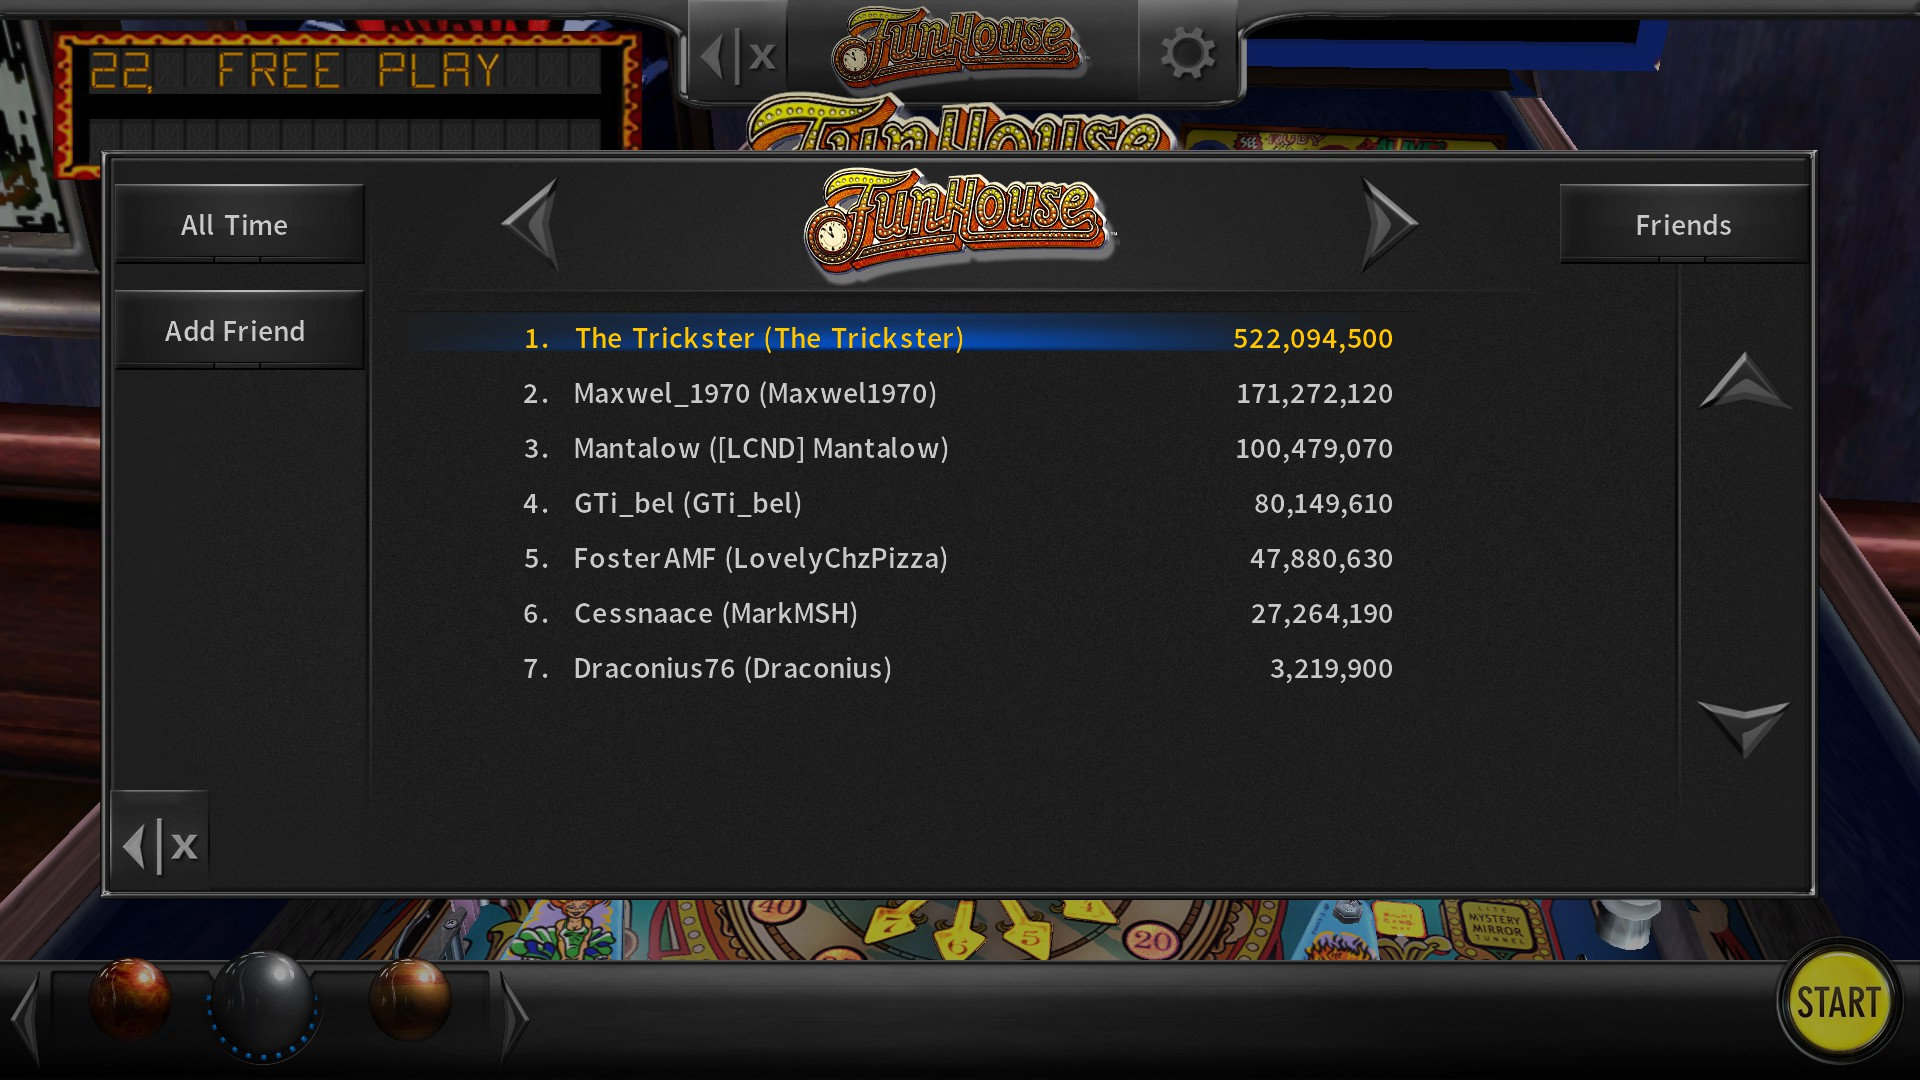 TheTrickster: Pinball Arcade: Funhouse (PC) 522,094,500 points on 2017-02-26 20:46:25